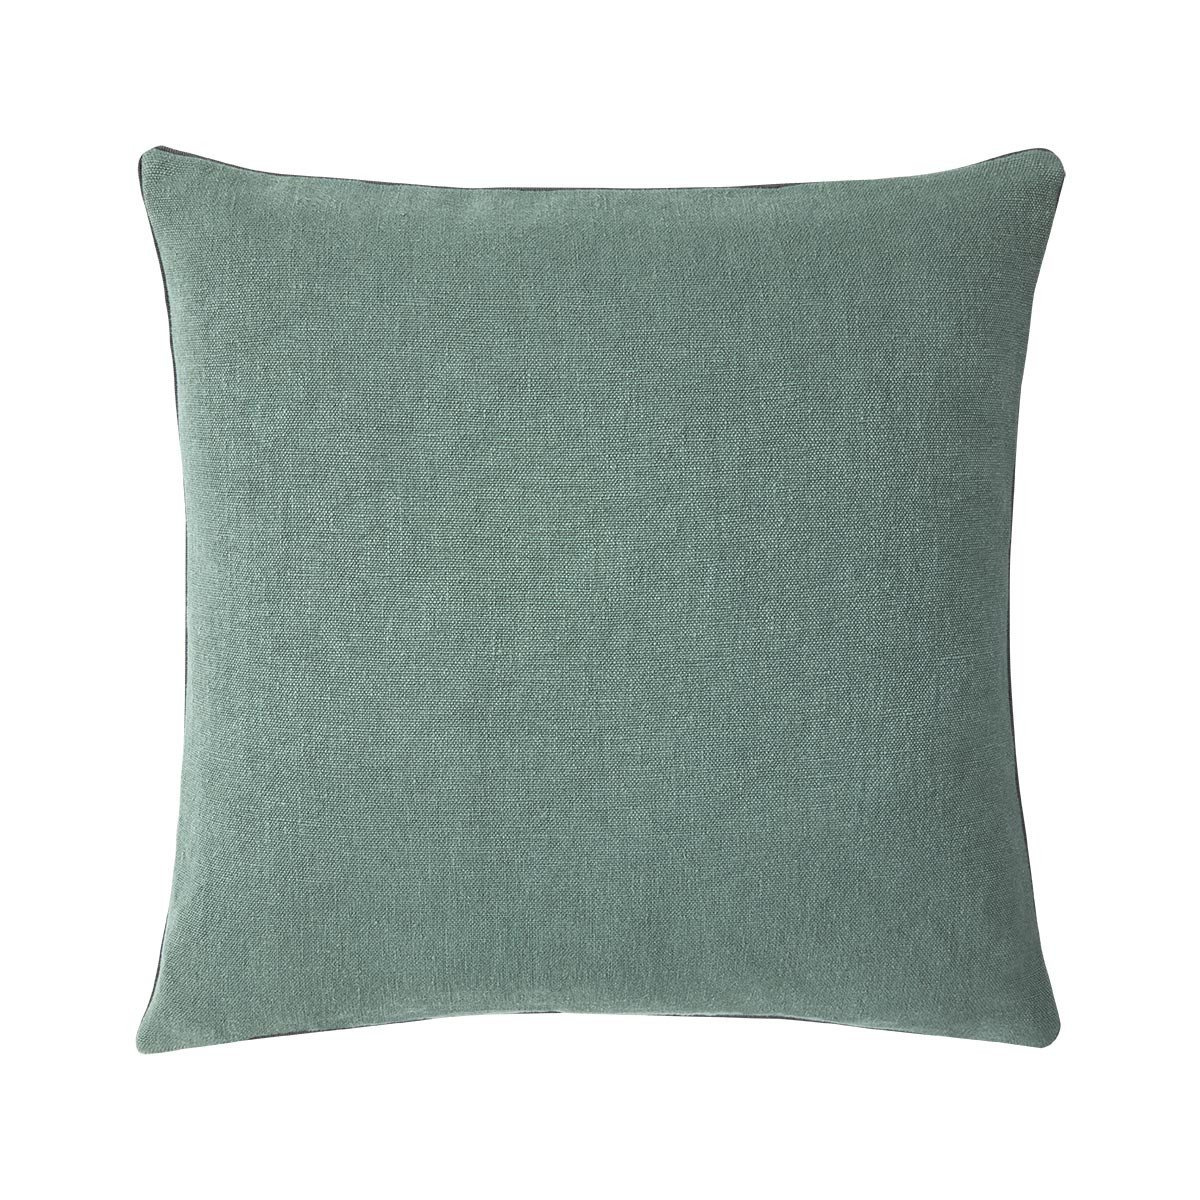 Iosis-Pigment-Mousse-Square Cushion Cover-Front